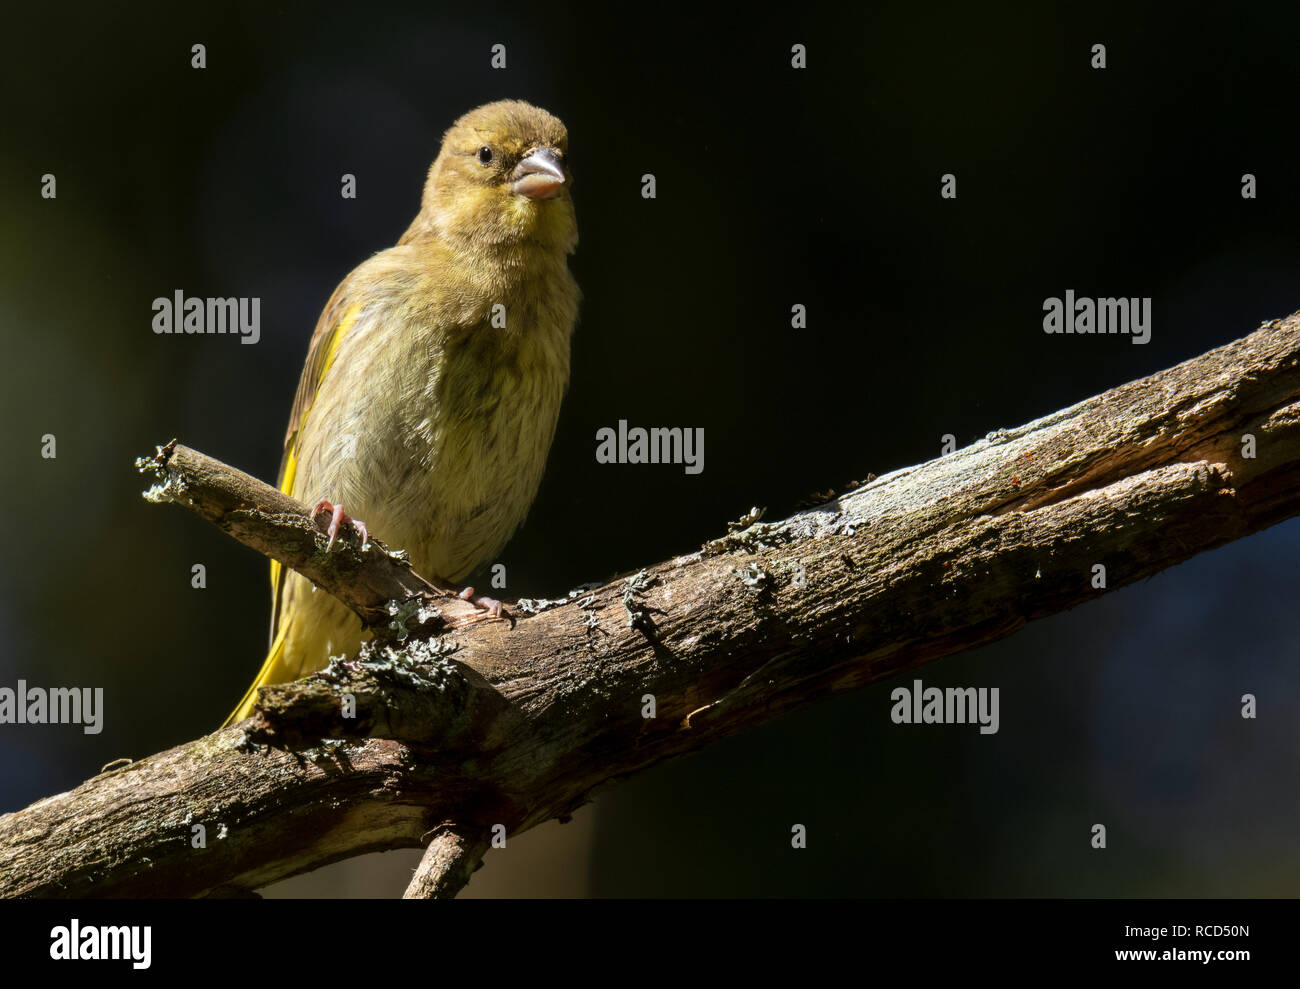 greenfinch sitting on a twig - Stock Image